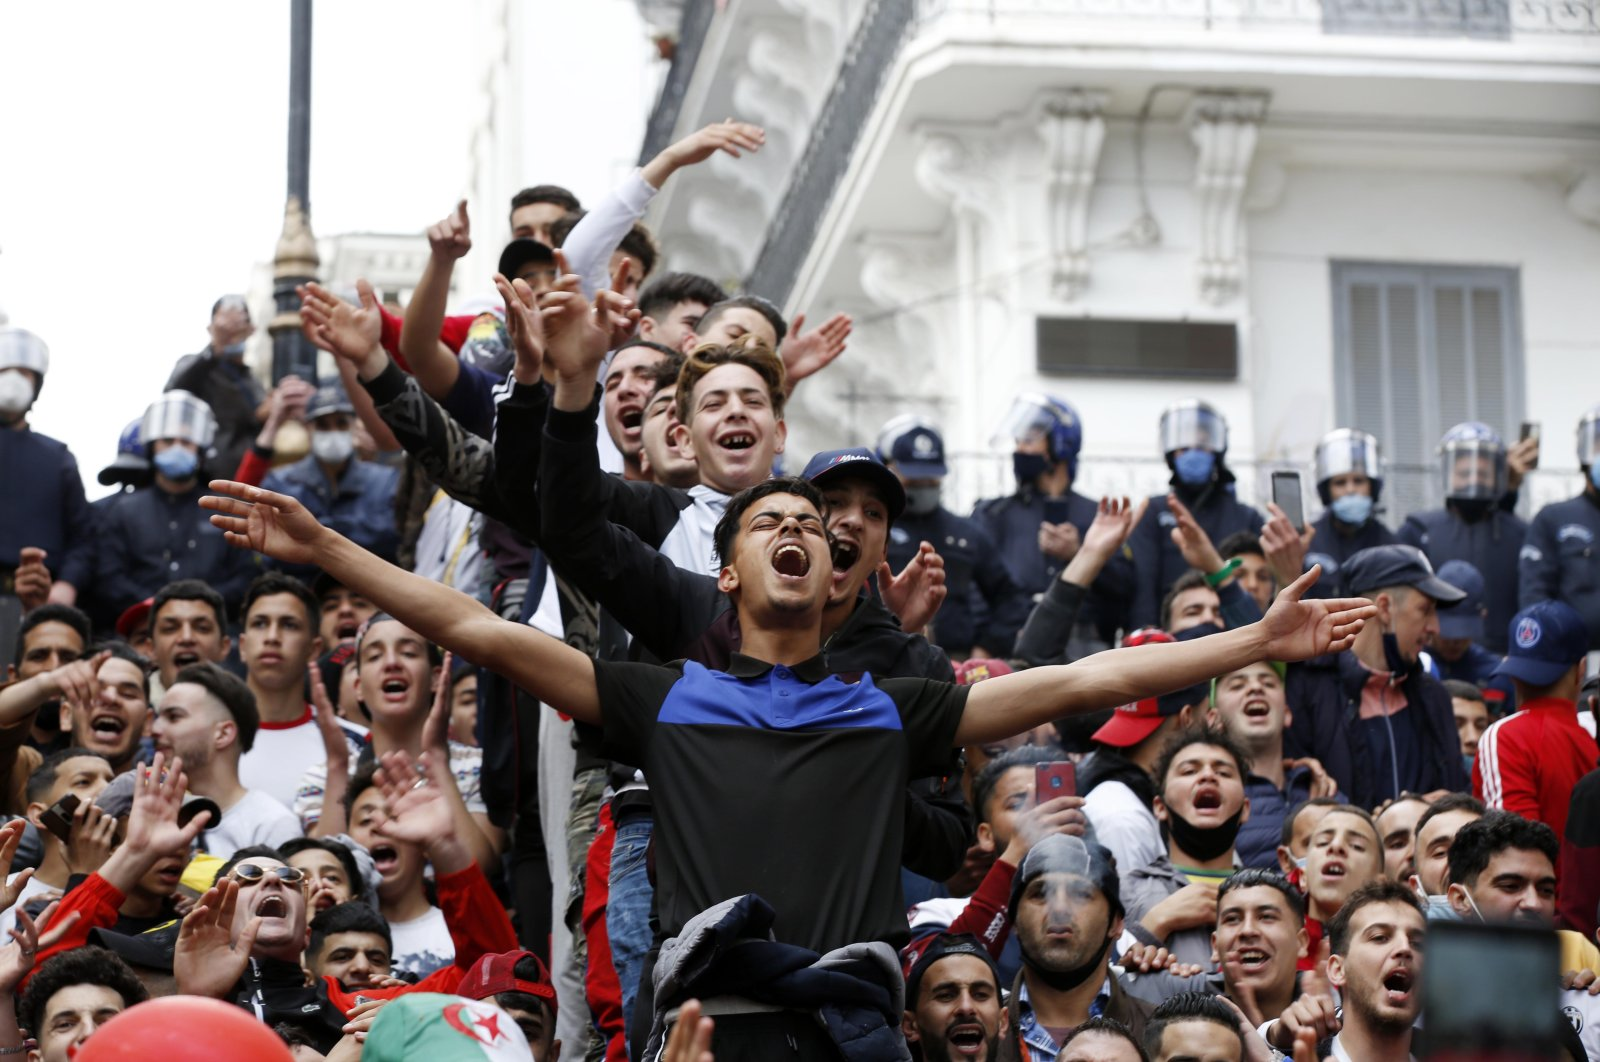 Algerians shout slogans during anti-government demonstration in Algiers, Algeria, Feb. 26, 2021. (Photo by Getty Images)